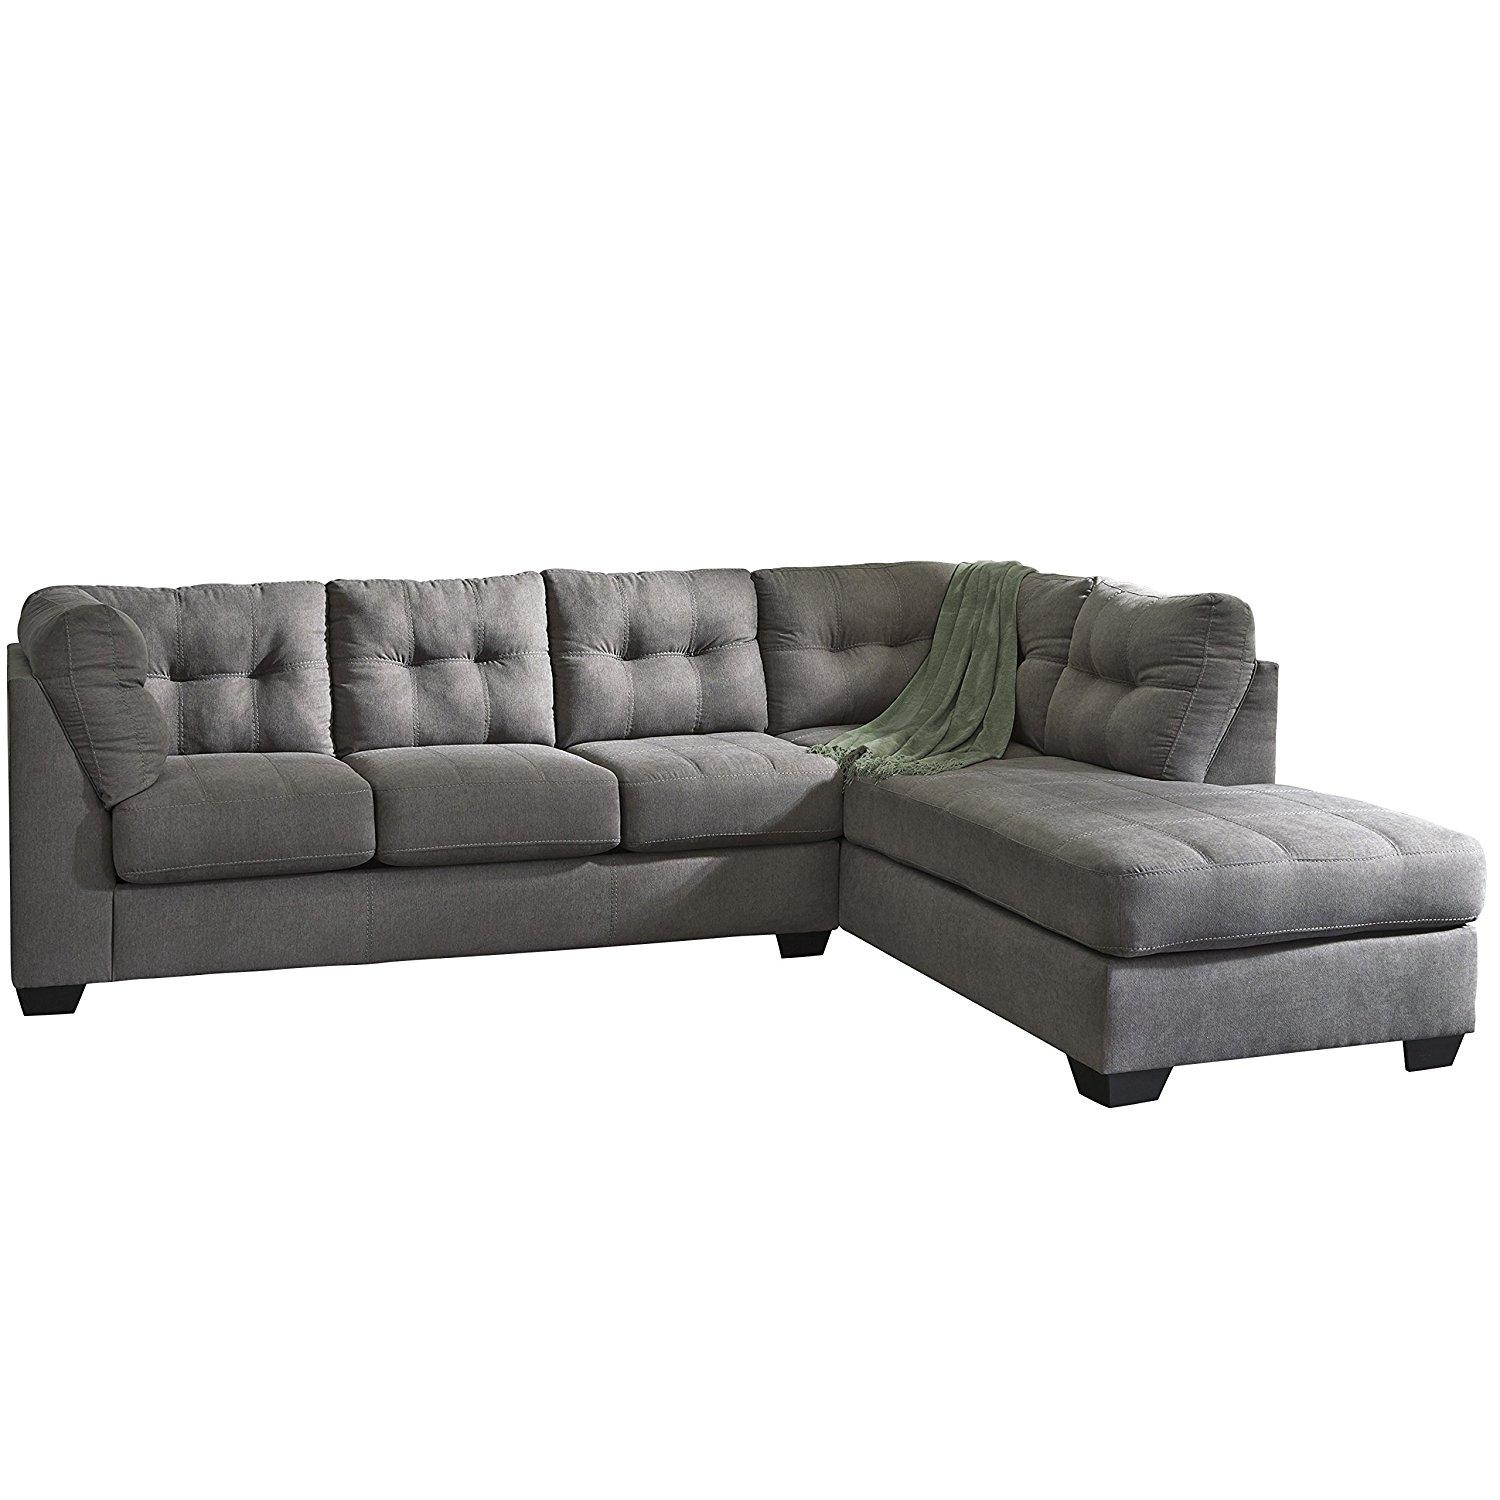 Sofas : Magnificent 2 Piece Sectional Sofa Sectional Couch With With Regard To Small 2 Piece Sectional Sofas (View 21 of 23)